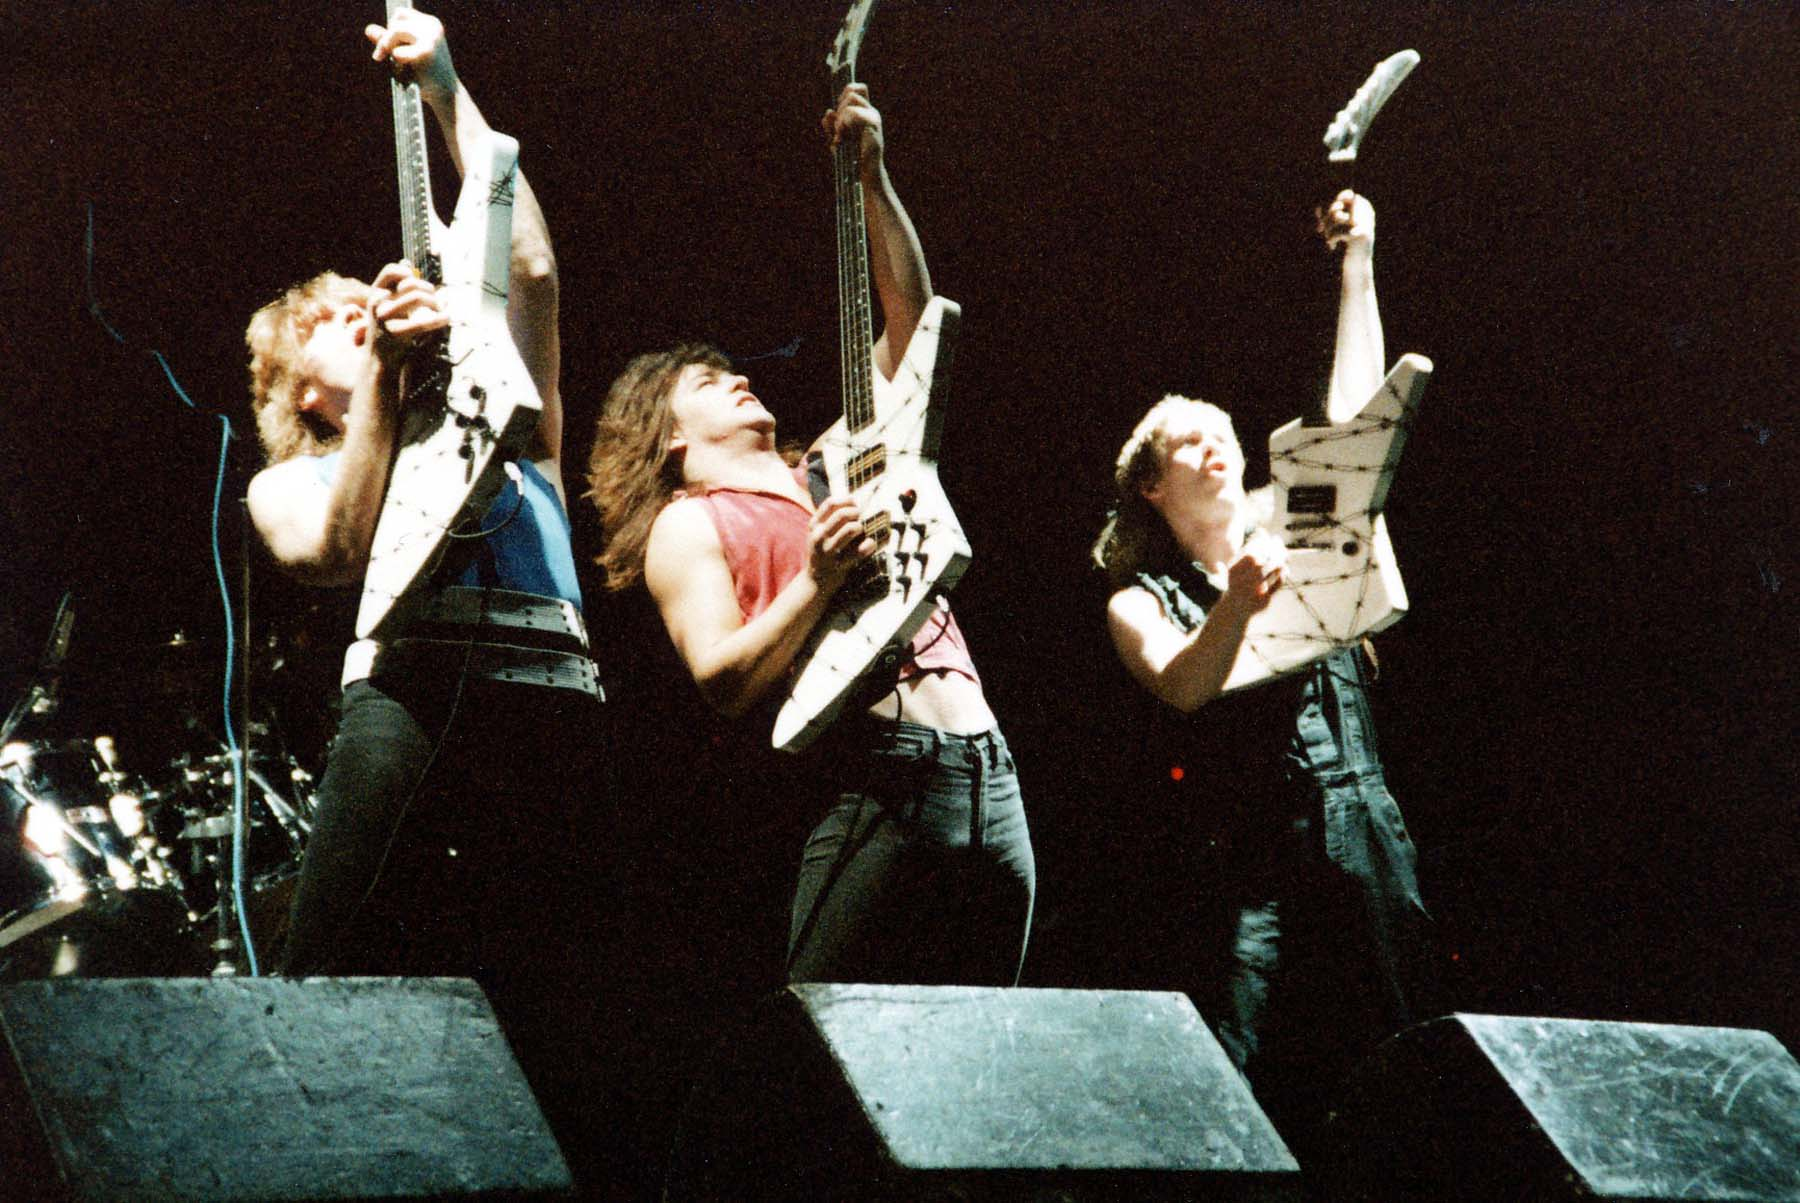 a photo of three heavy metal guitarists with their electric guitars raised in the air